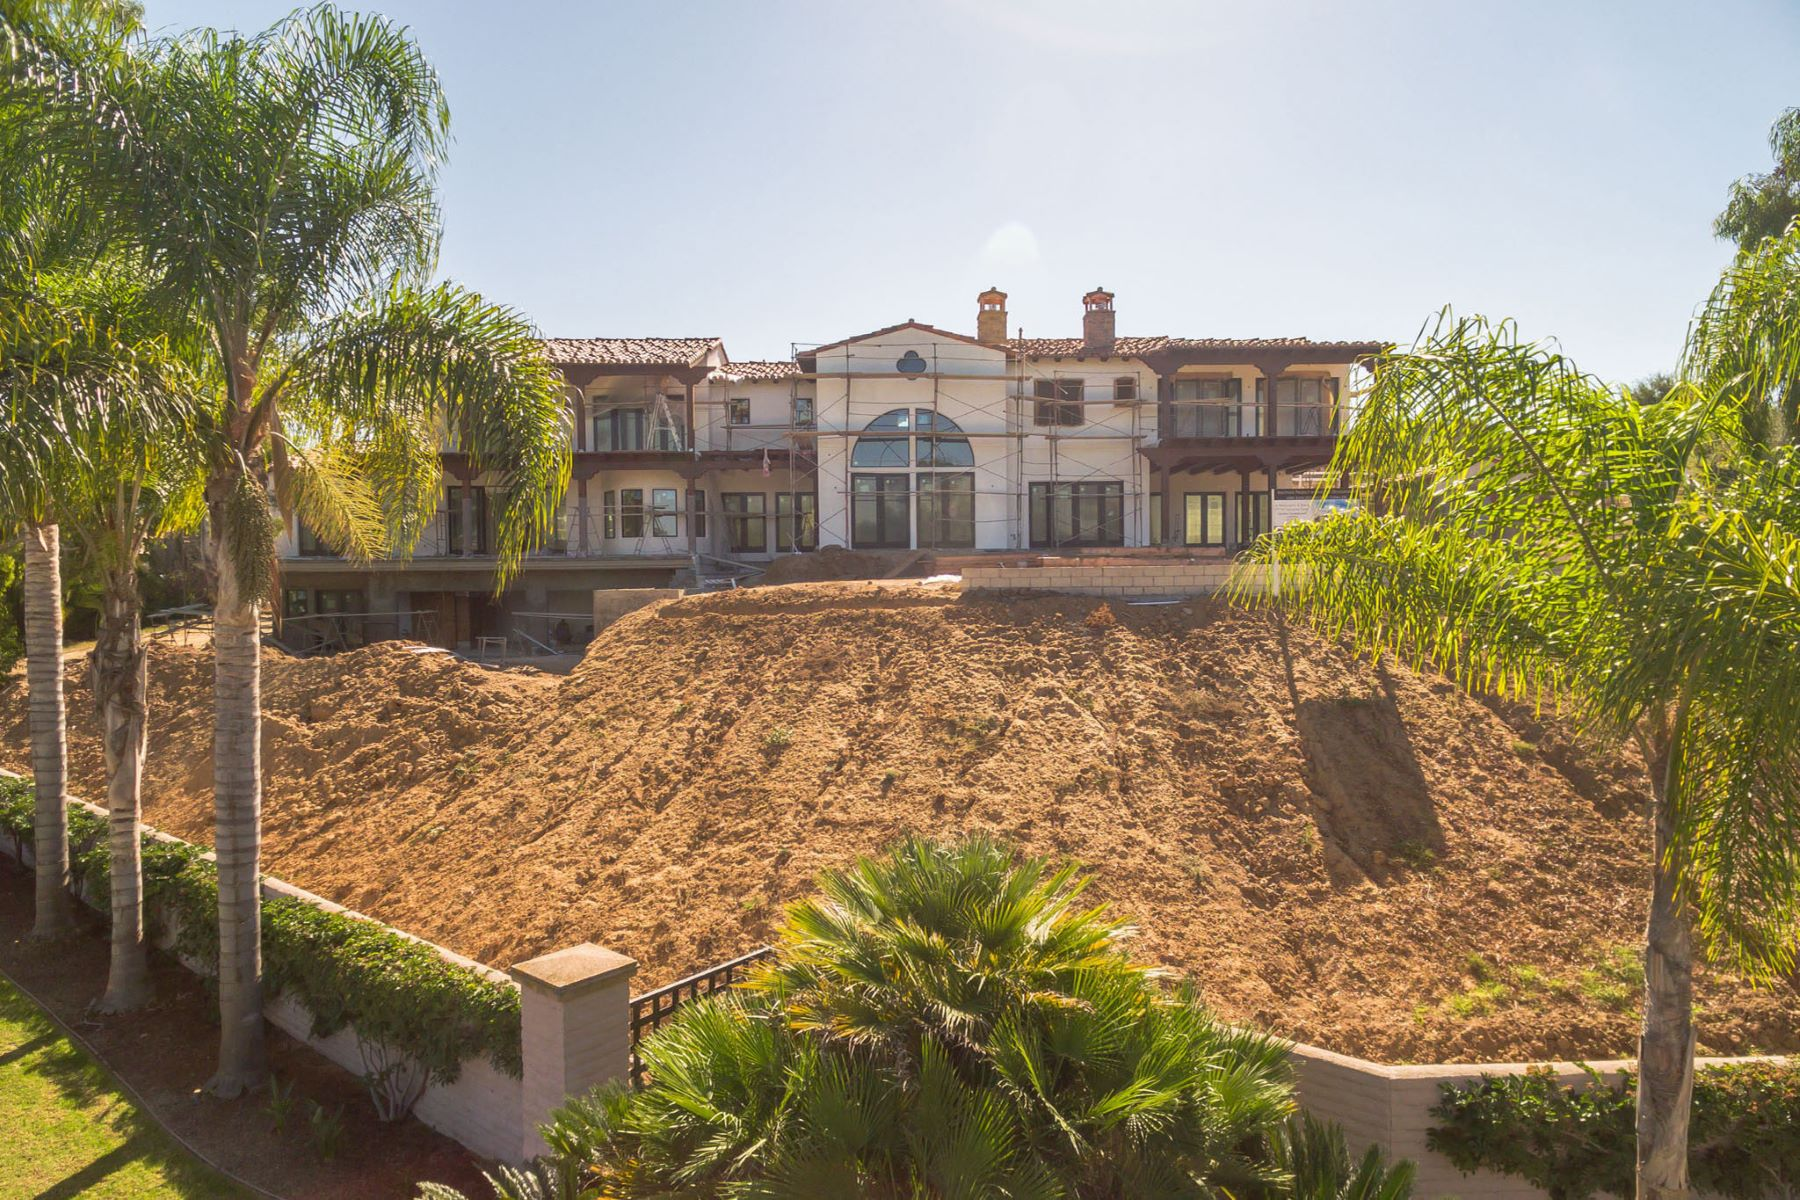 Additional photo for property listing at 6888 Rancho Santa Fe Farms Dr 6888 Rancho Santa Fe Farms Drive Rancho Santa Fe, California 92067 United States